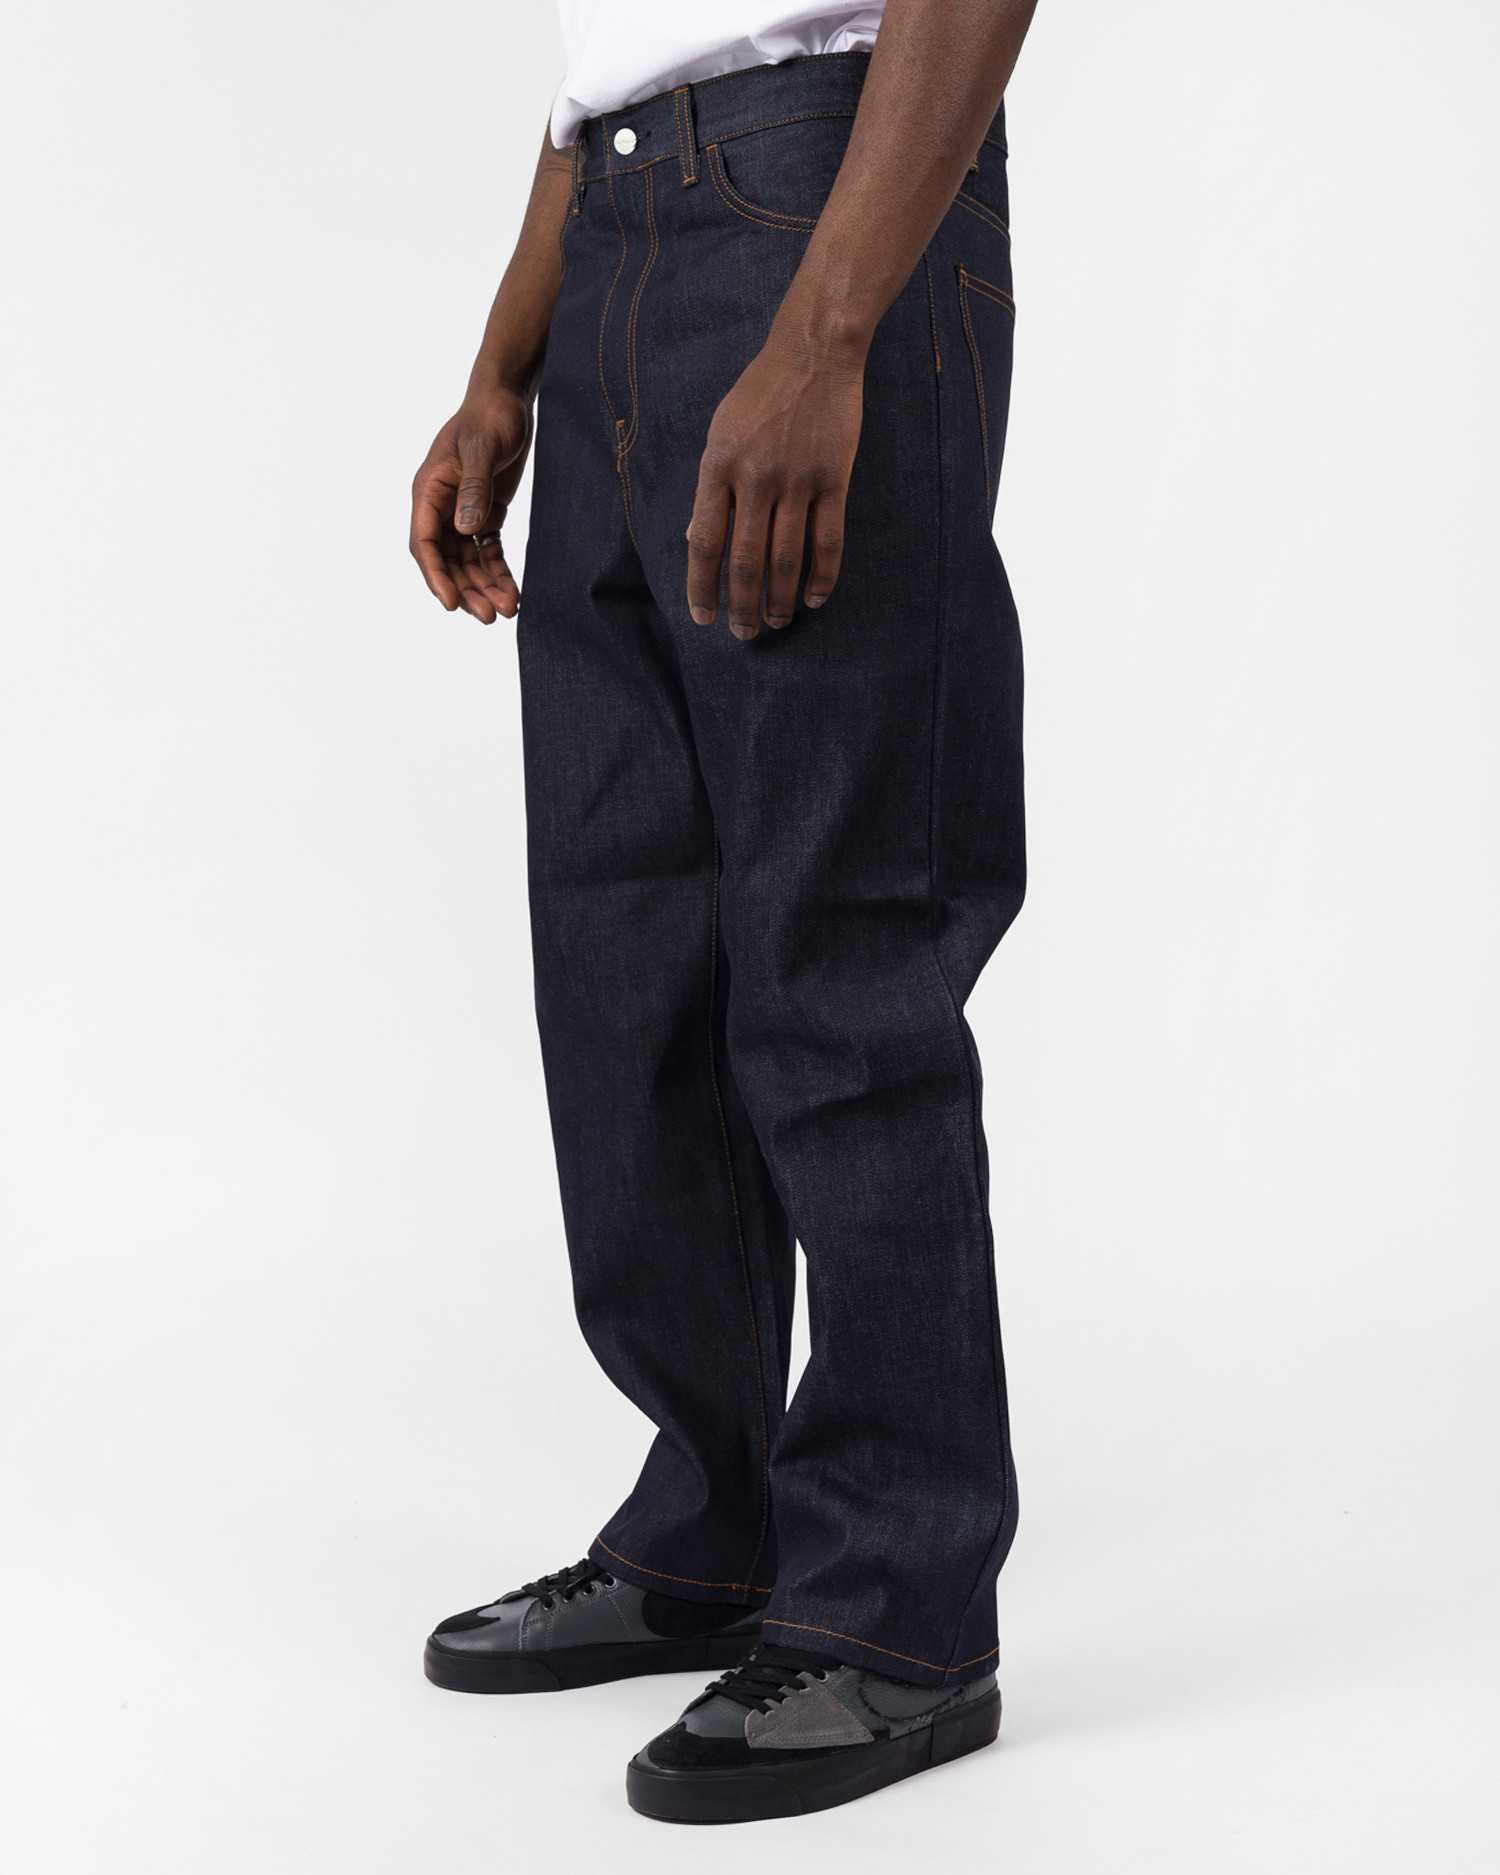 Carhartt Smith Pant Organic Cotton Monroe Blue Denim Blue Rigid